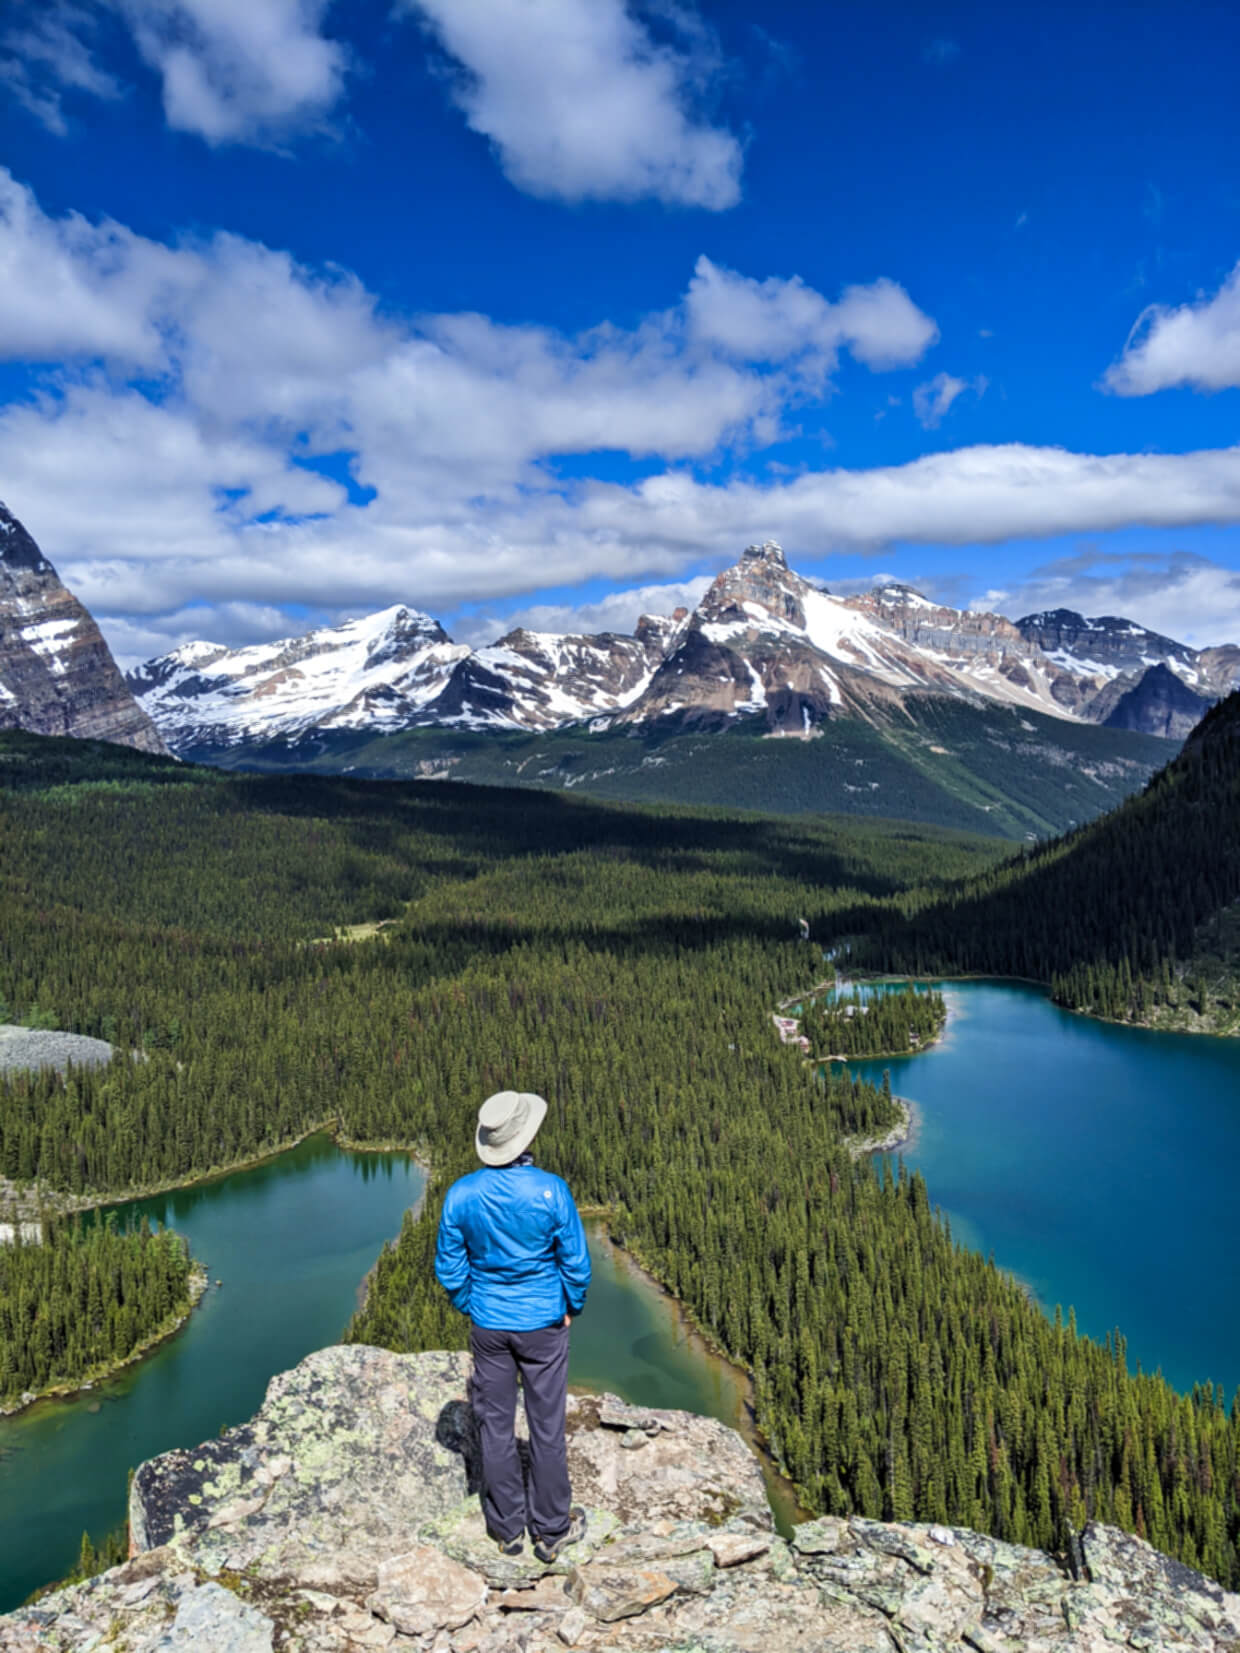 JR standing on rocky elevated viewpoint looking down on three lakes, backdropped by mountains